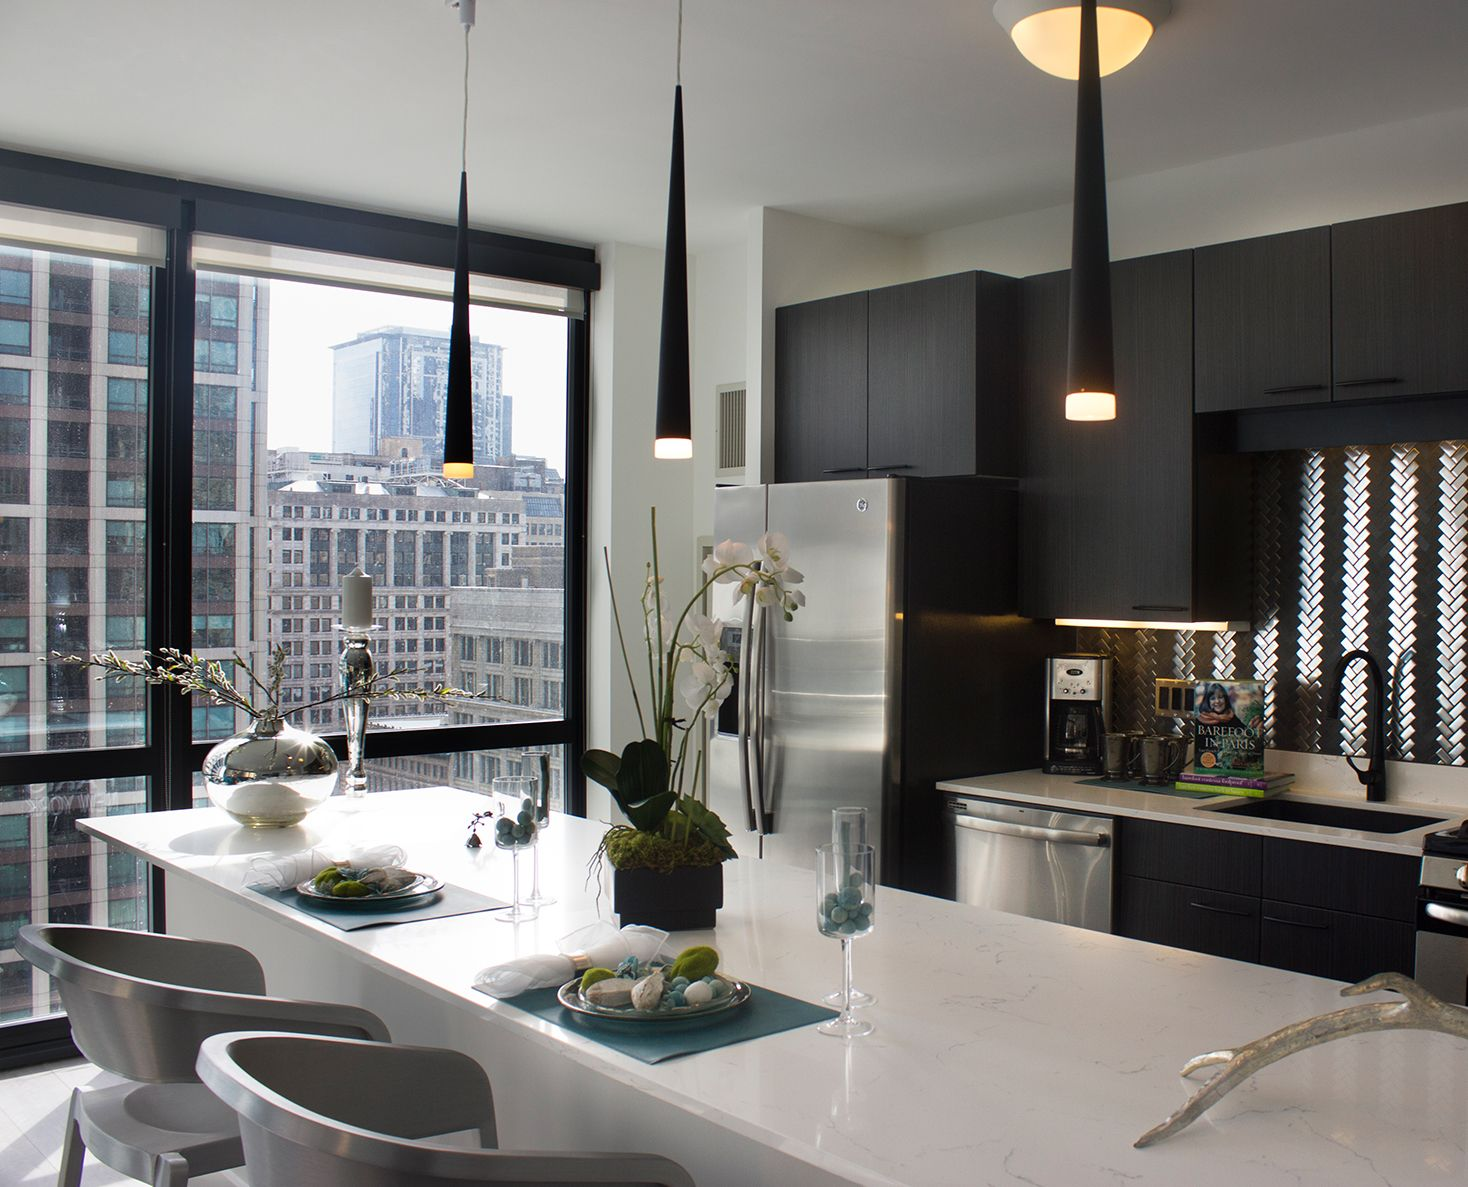 Chicago Luxury Apartments for Rent  Chicago Rental Company